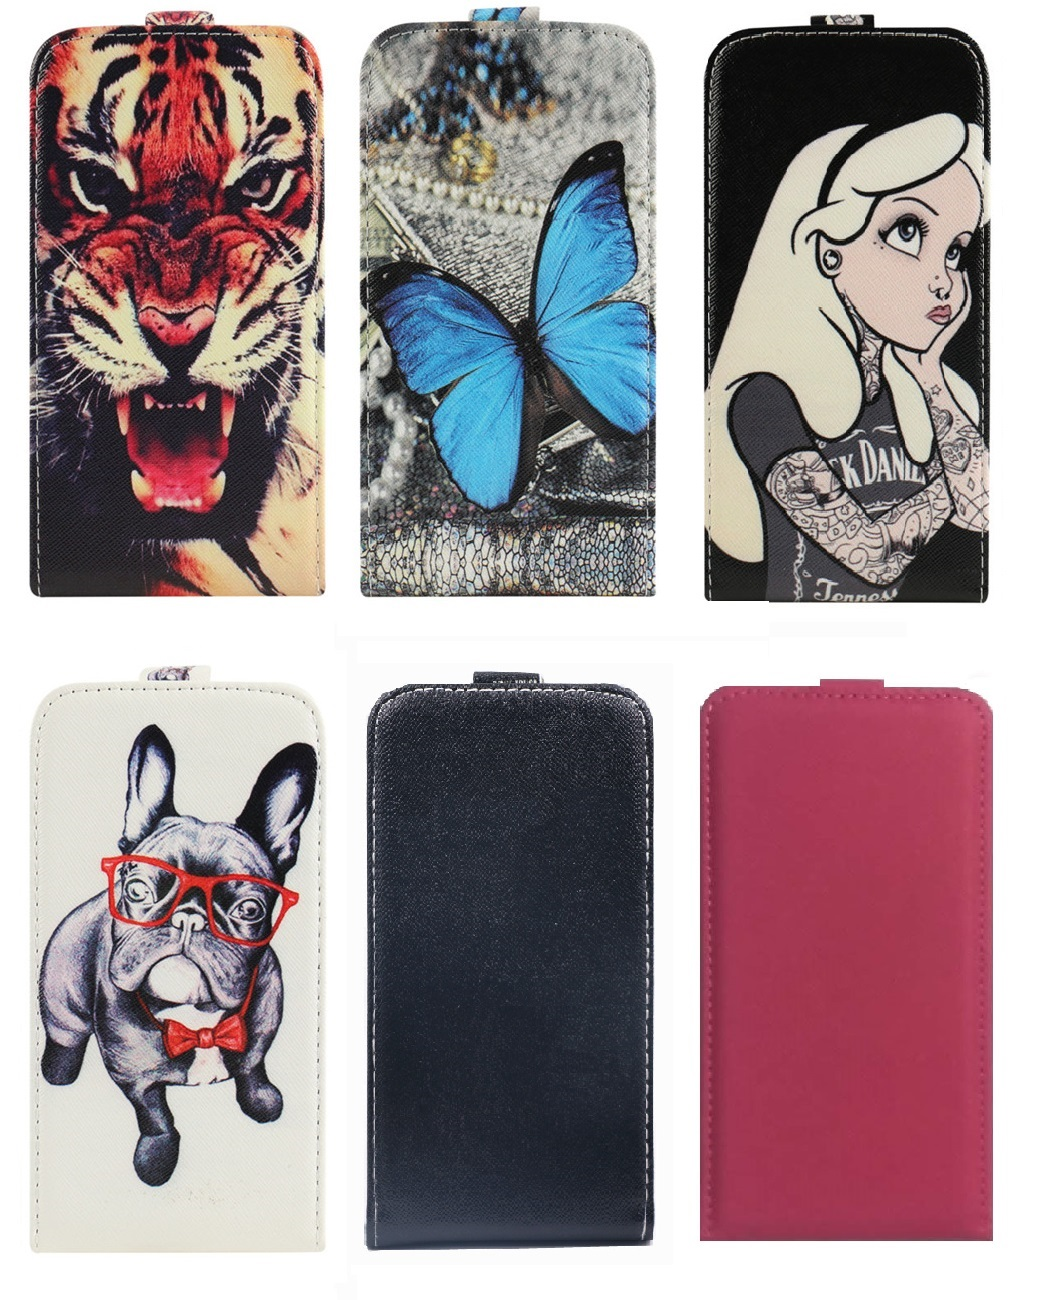 Yooyour Cartoon Gedrukt Up en Down PU Lederen Case Cover behuizing shell Voor Micromax Q334 Q338 Q392 Q383